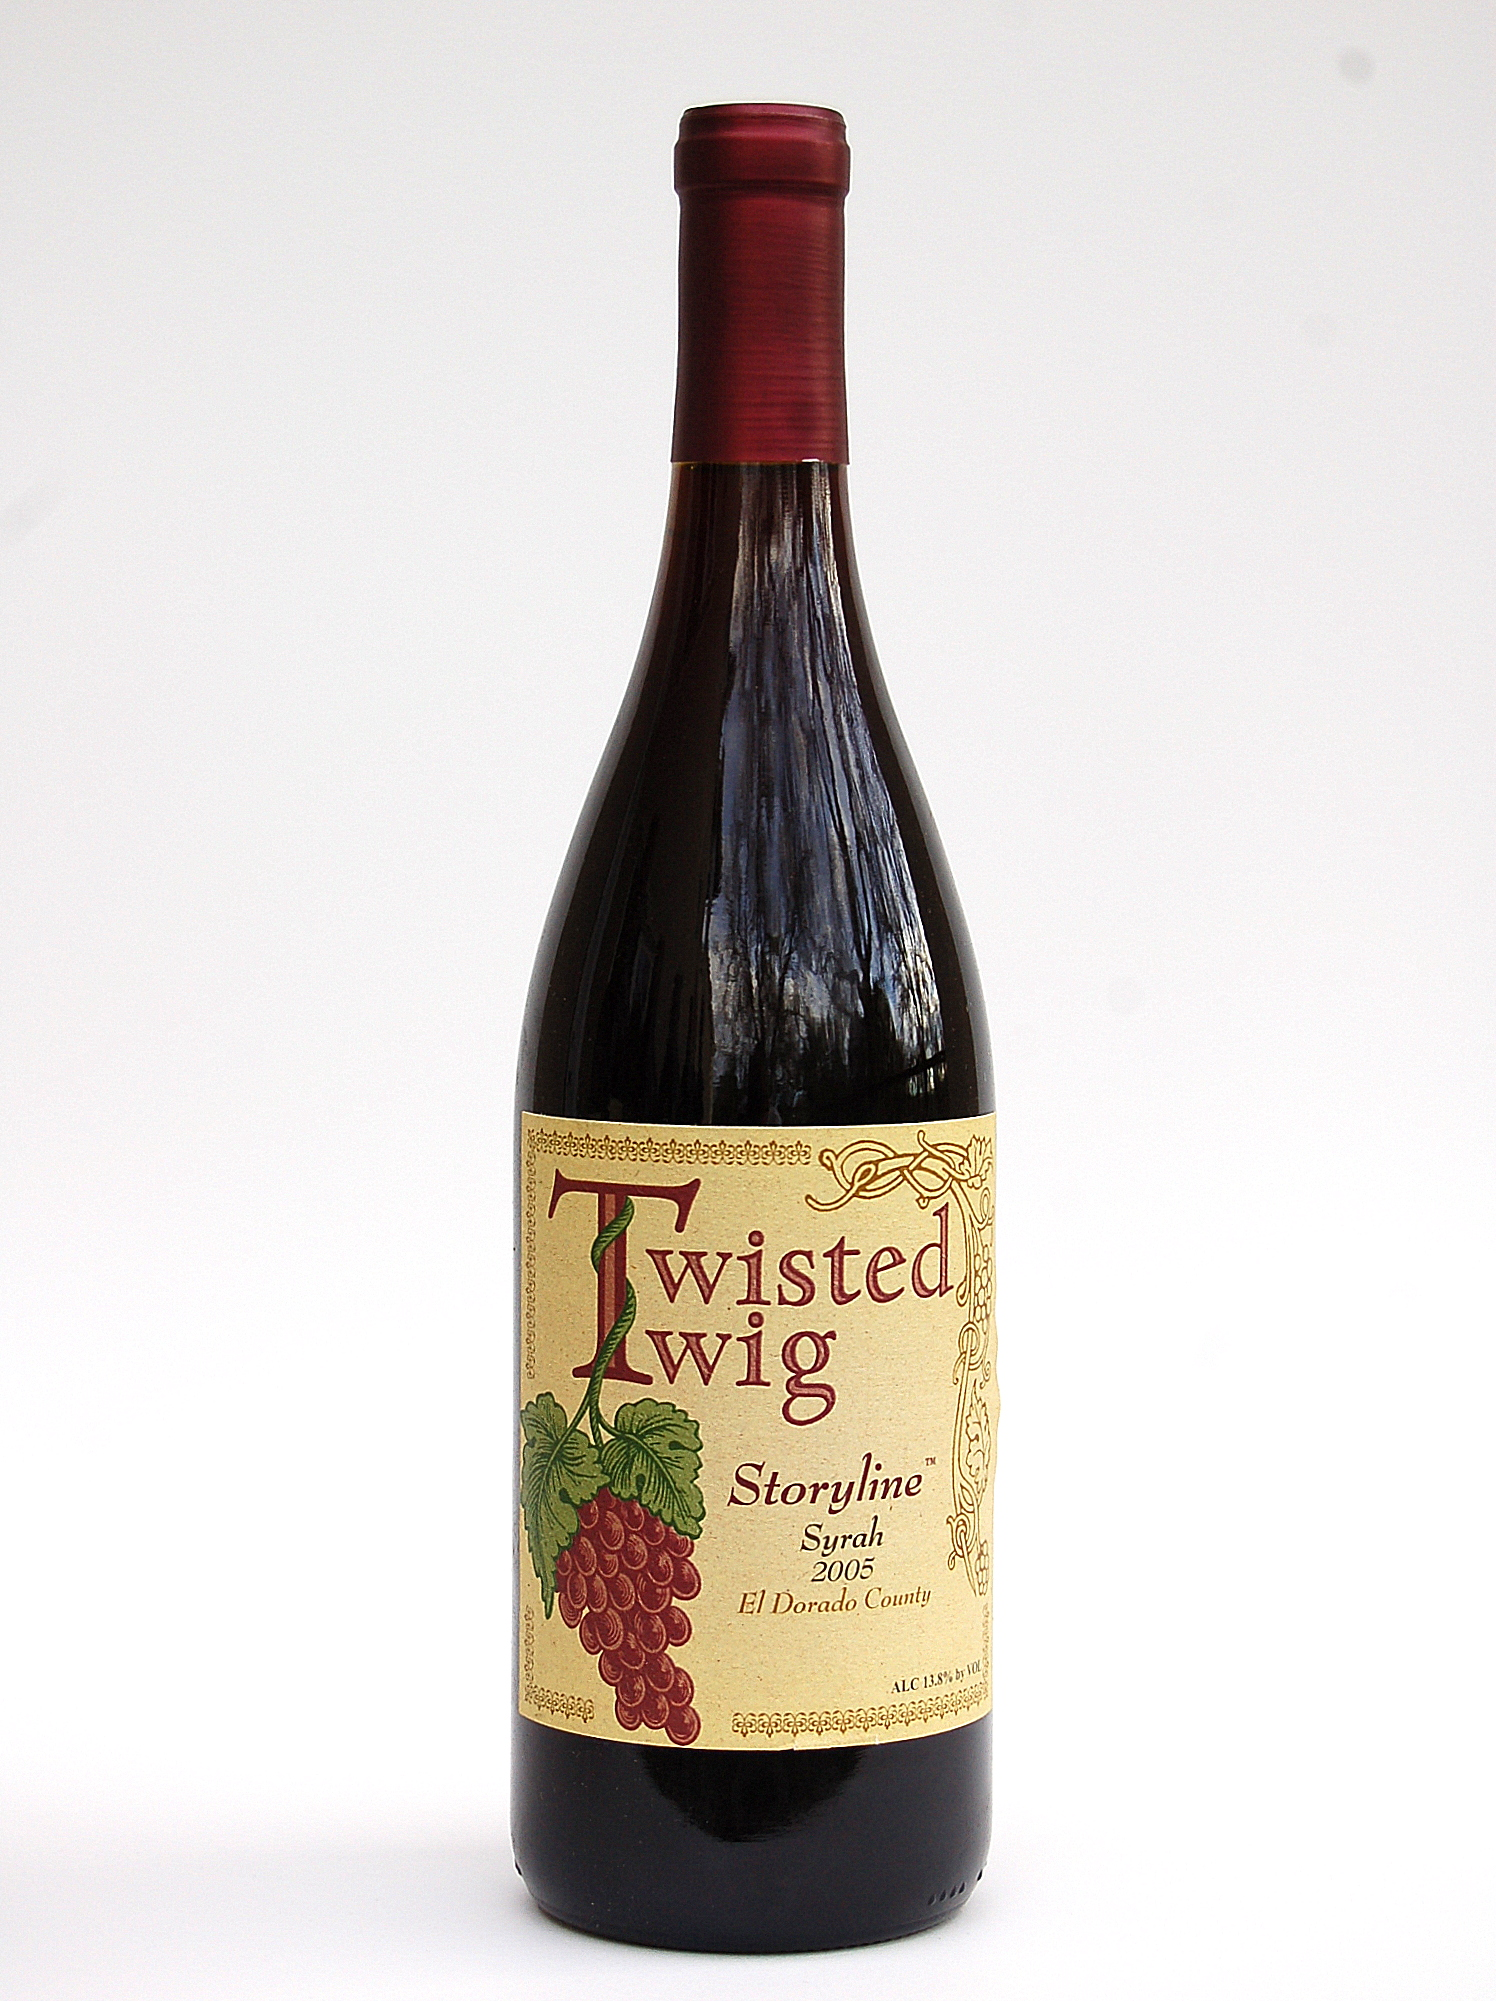 Twisted Twig Storyline Syrah 2005